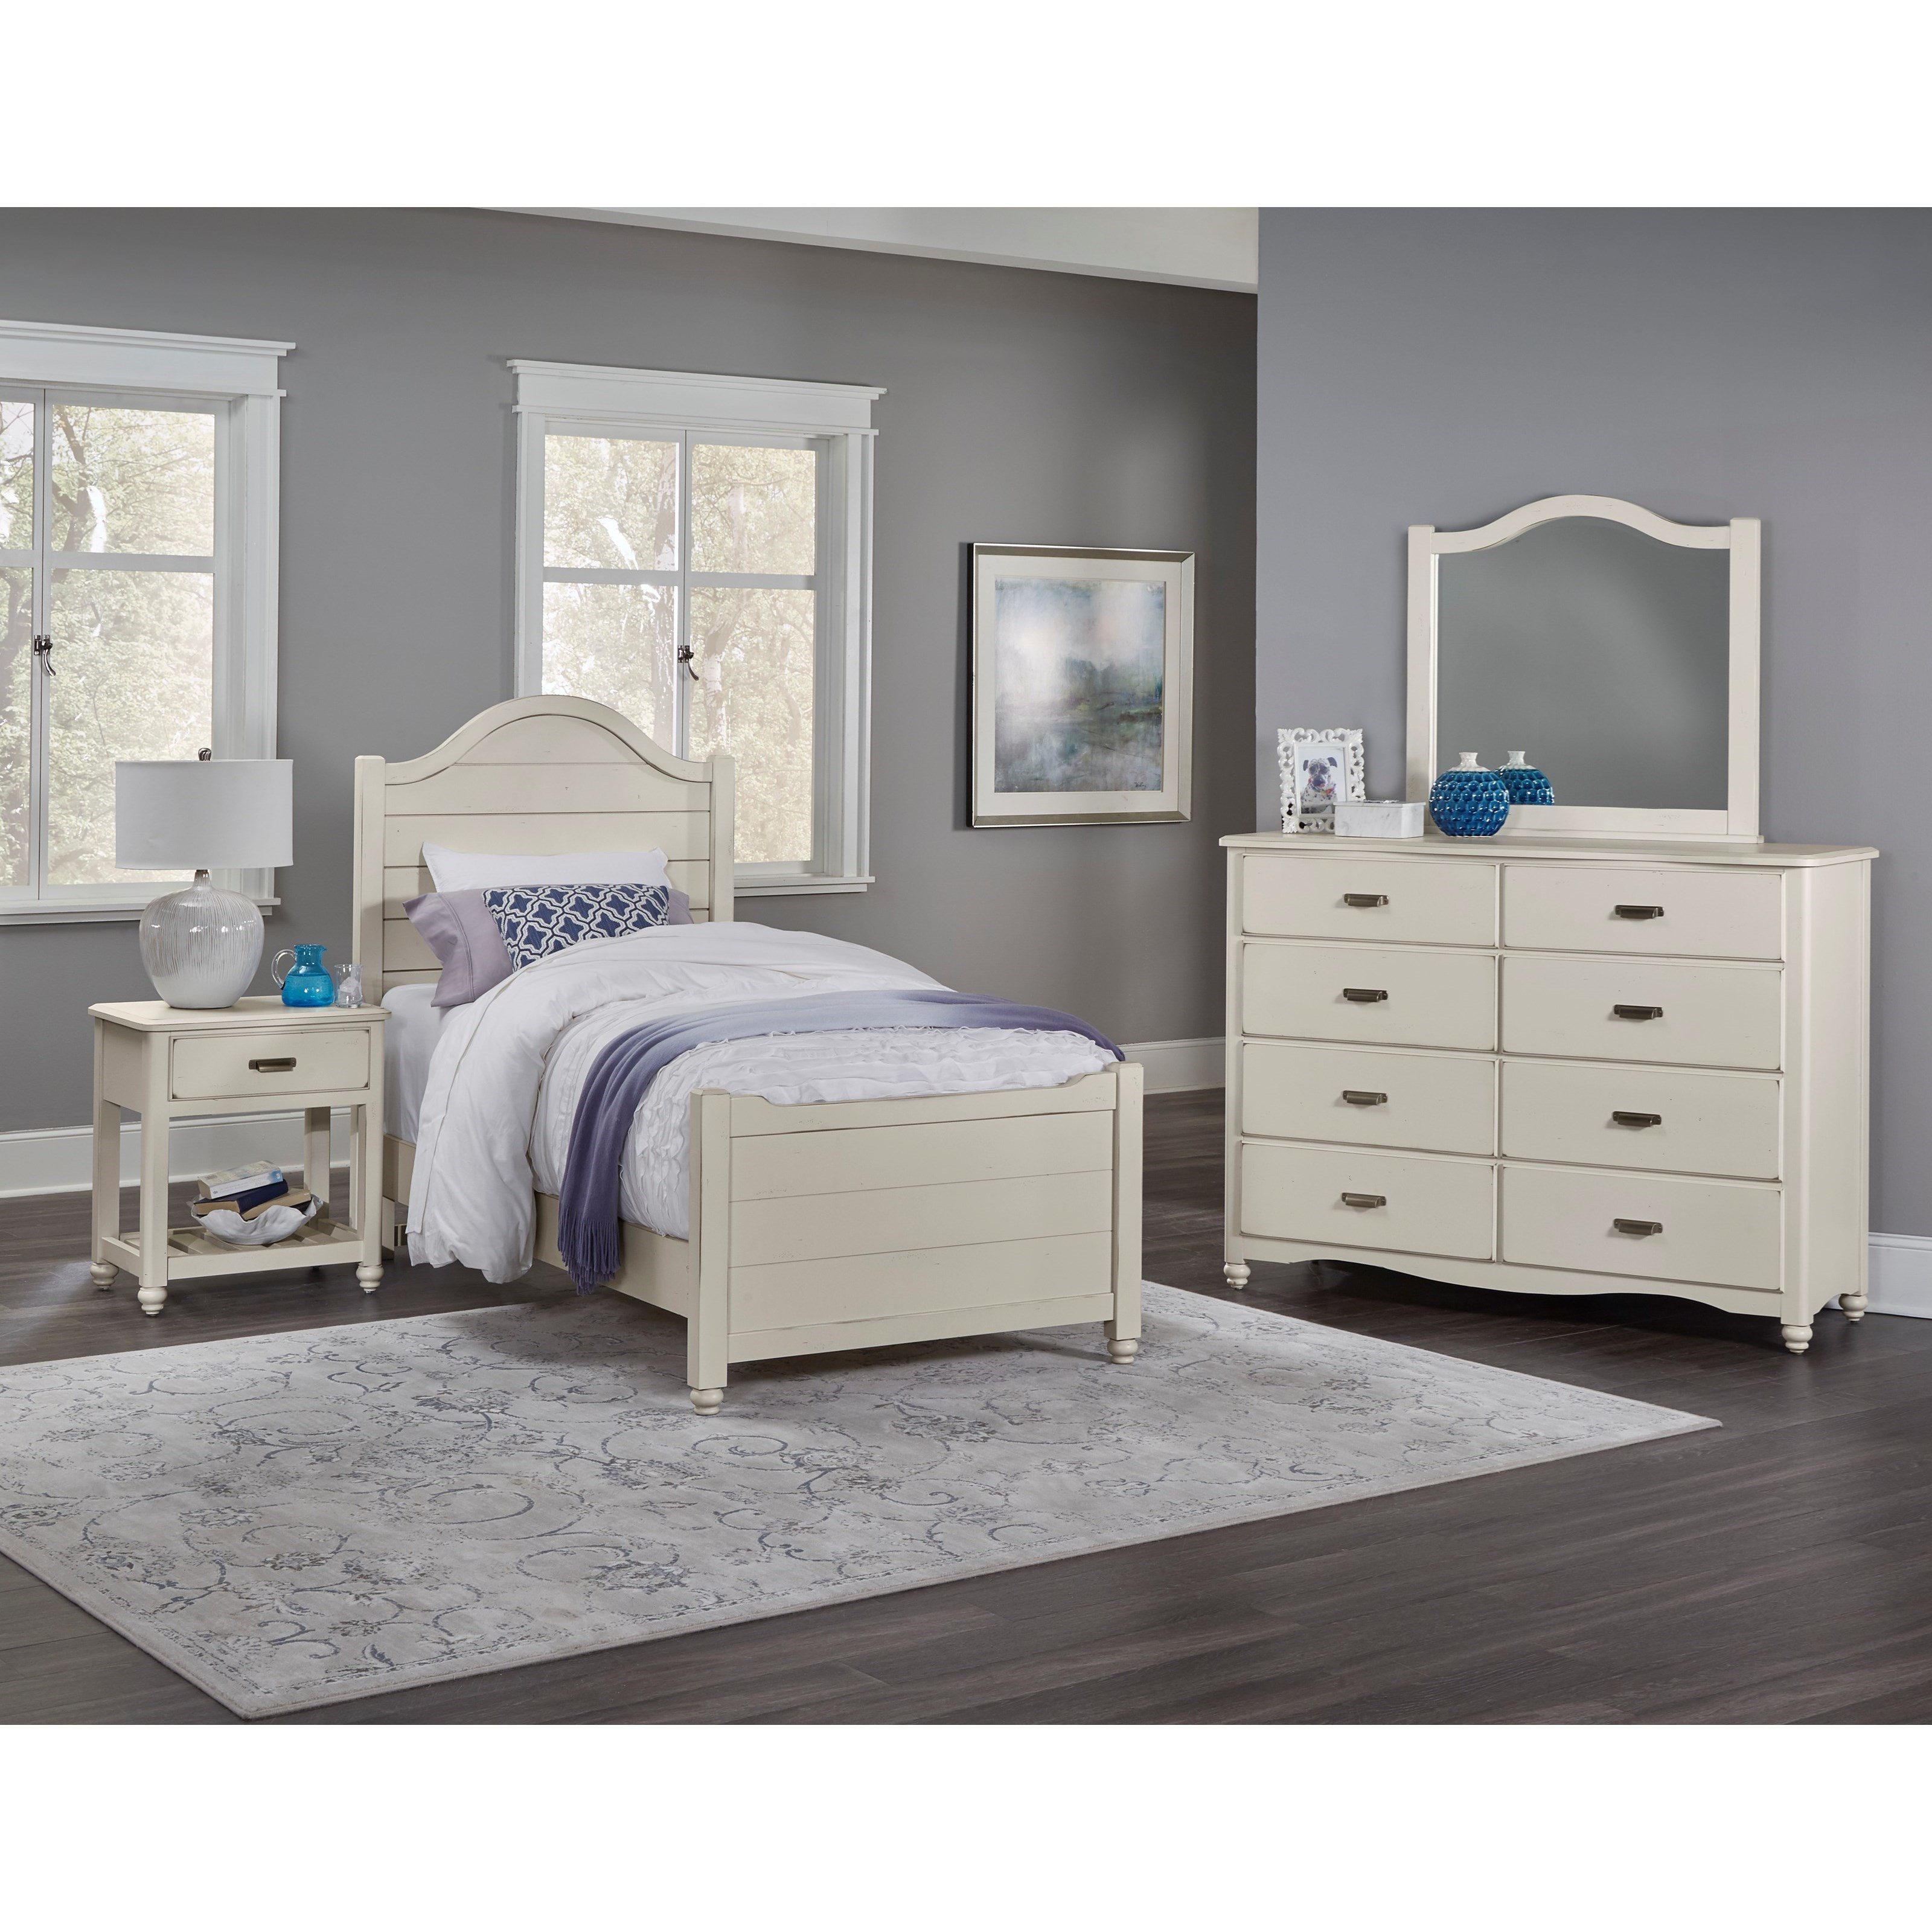 Vaughan Bassett American Maple Twin Bedroom Group - Item Number: 404 T Bedroom Group 6